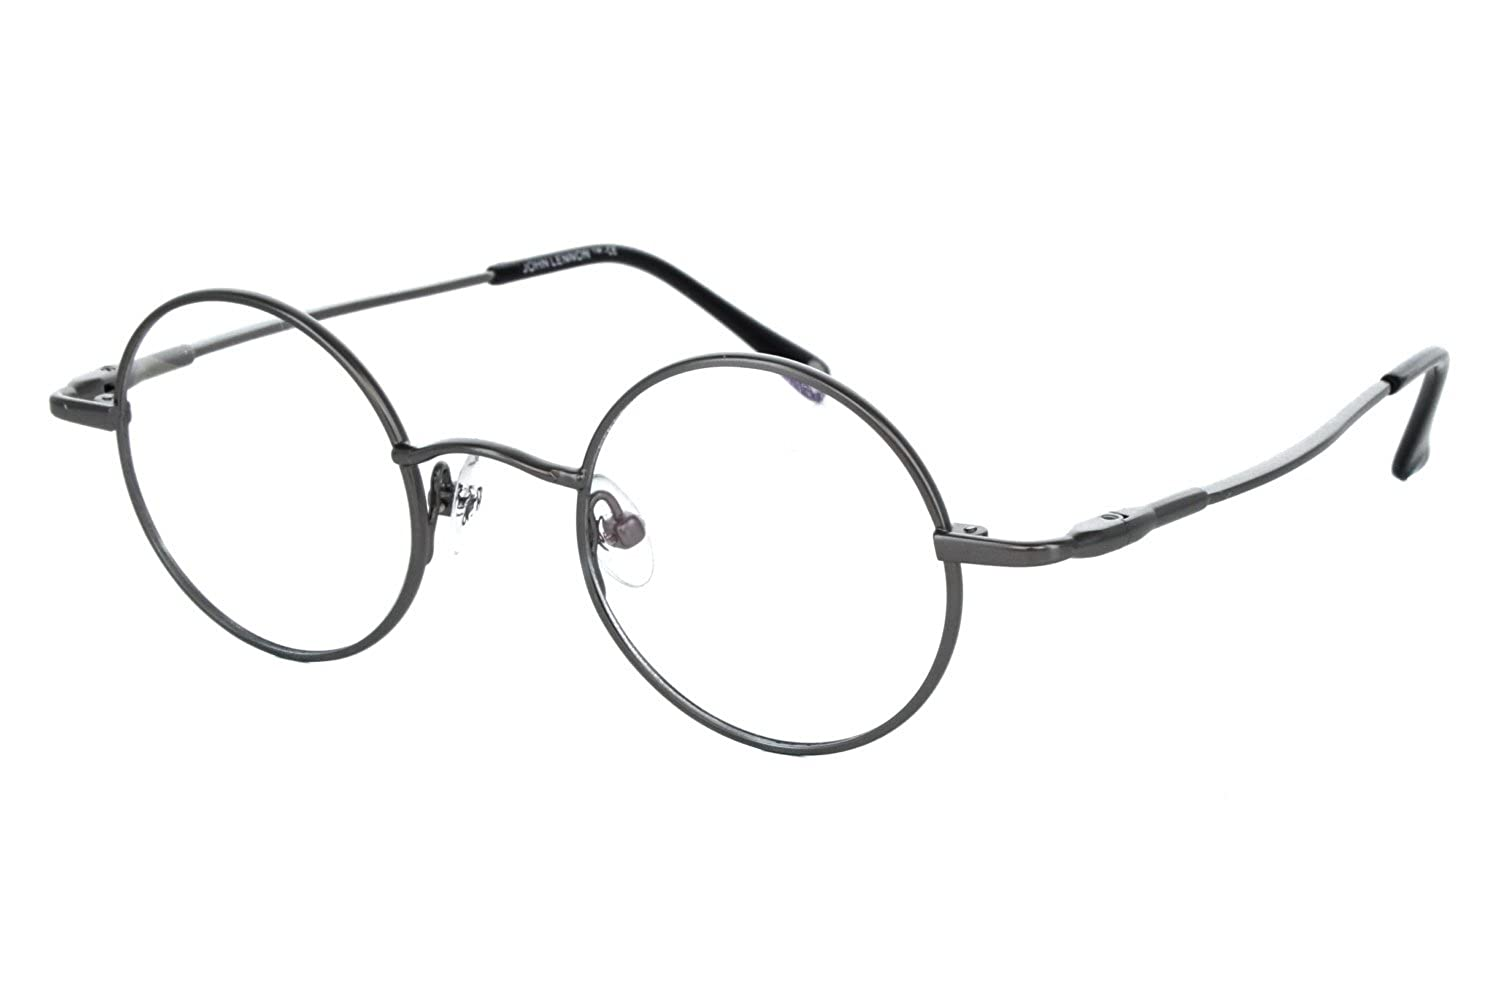 Amazon.com: John Lennon Walrus Eyeglasses Pewter (2): Clothing